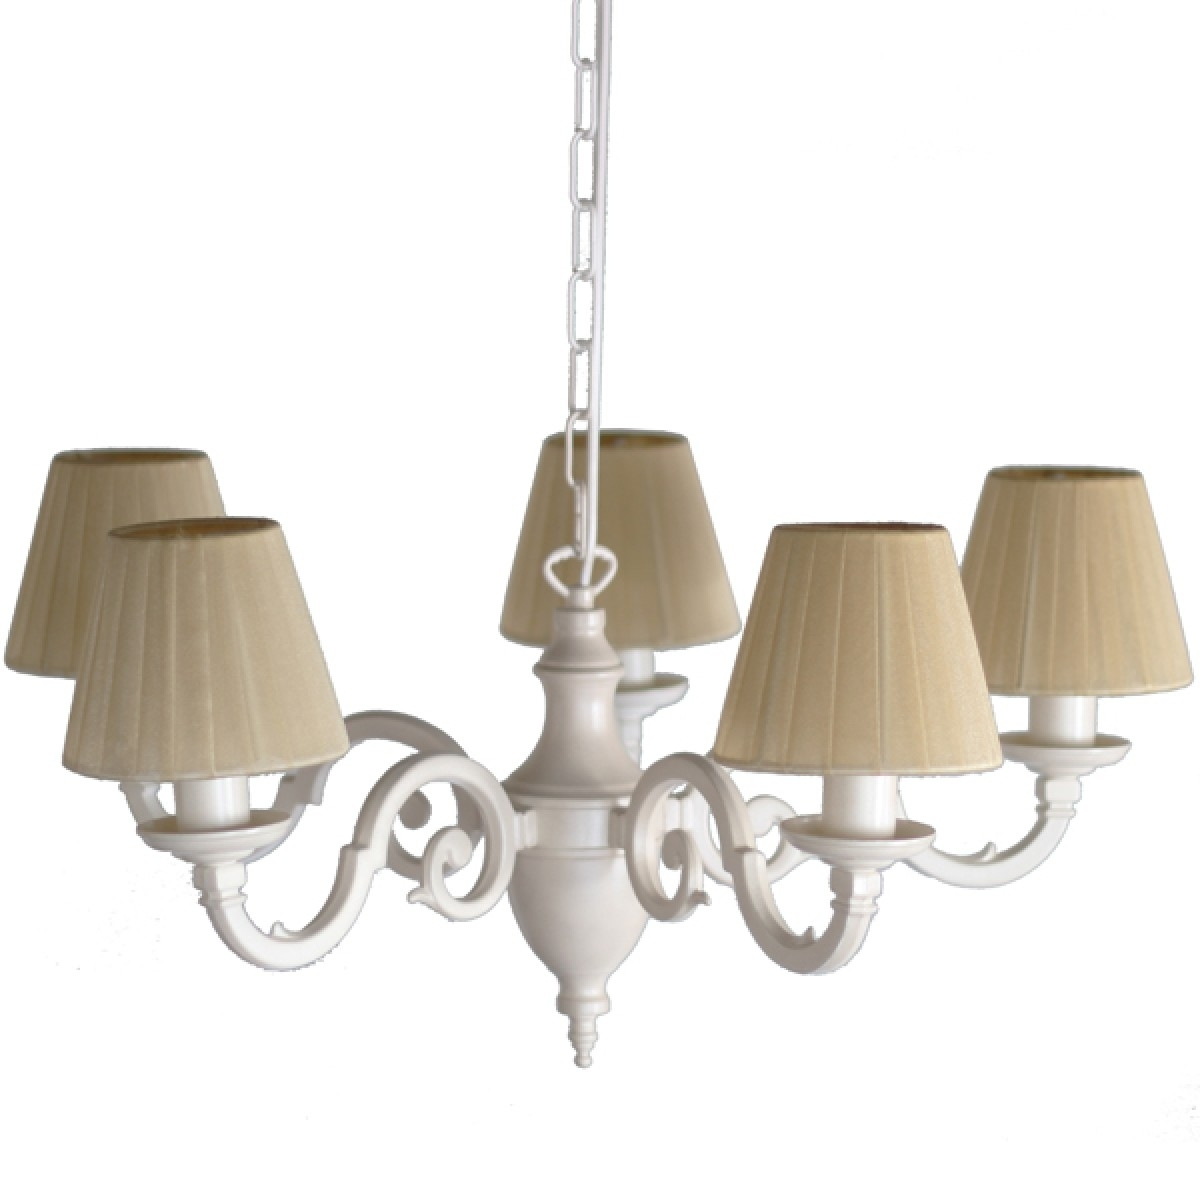 Light Fitting Chandeliers With 2018 Bedroom Light Fitting Chandelier (View 4 of 15)